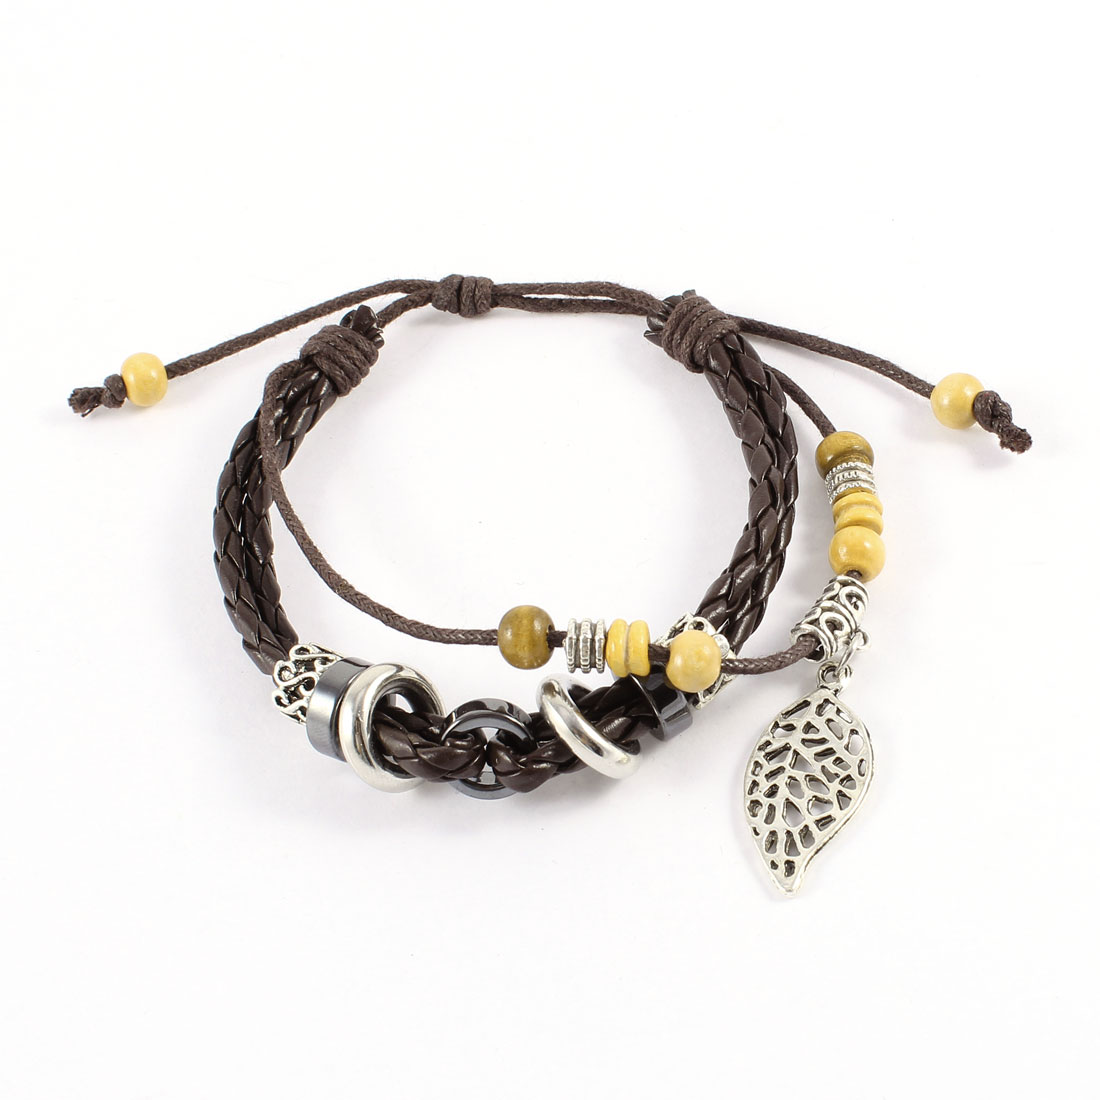 Leaf Pendant Brown Braided Faux Leather Adjustable Rope Bracelet for Unisex